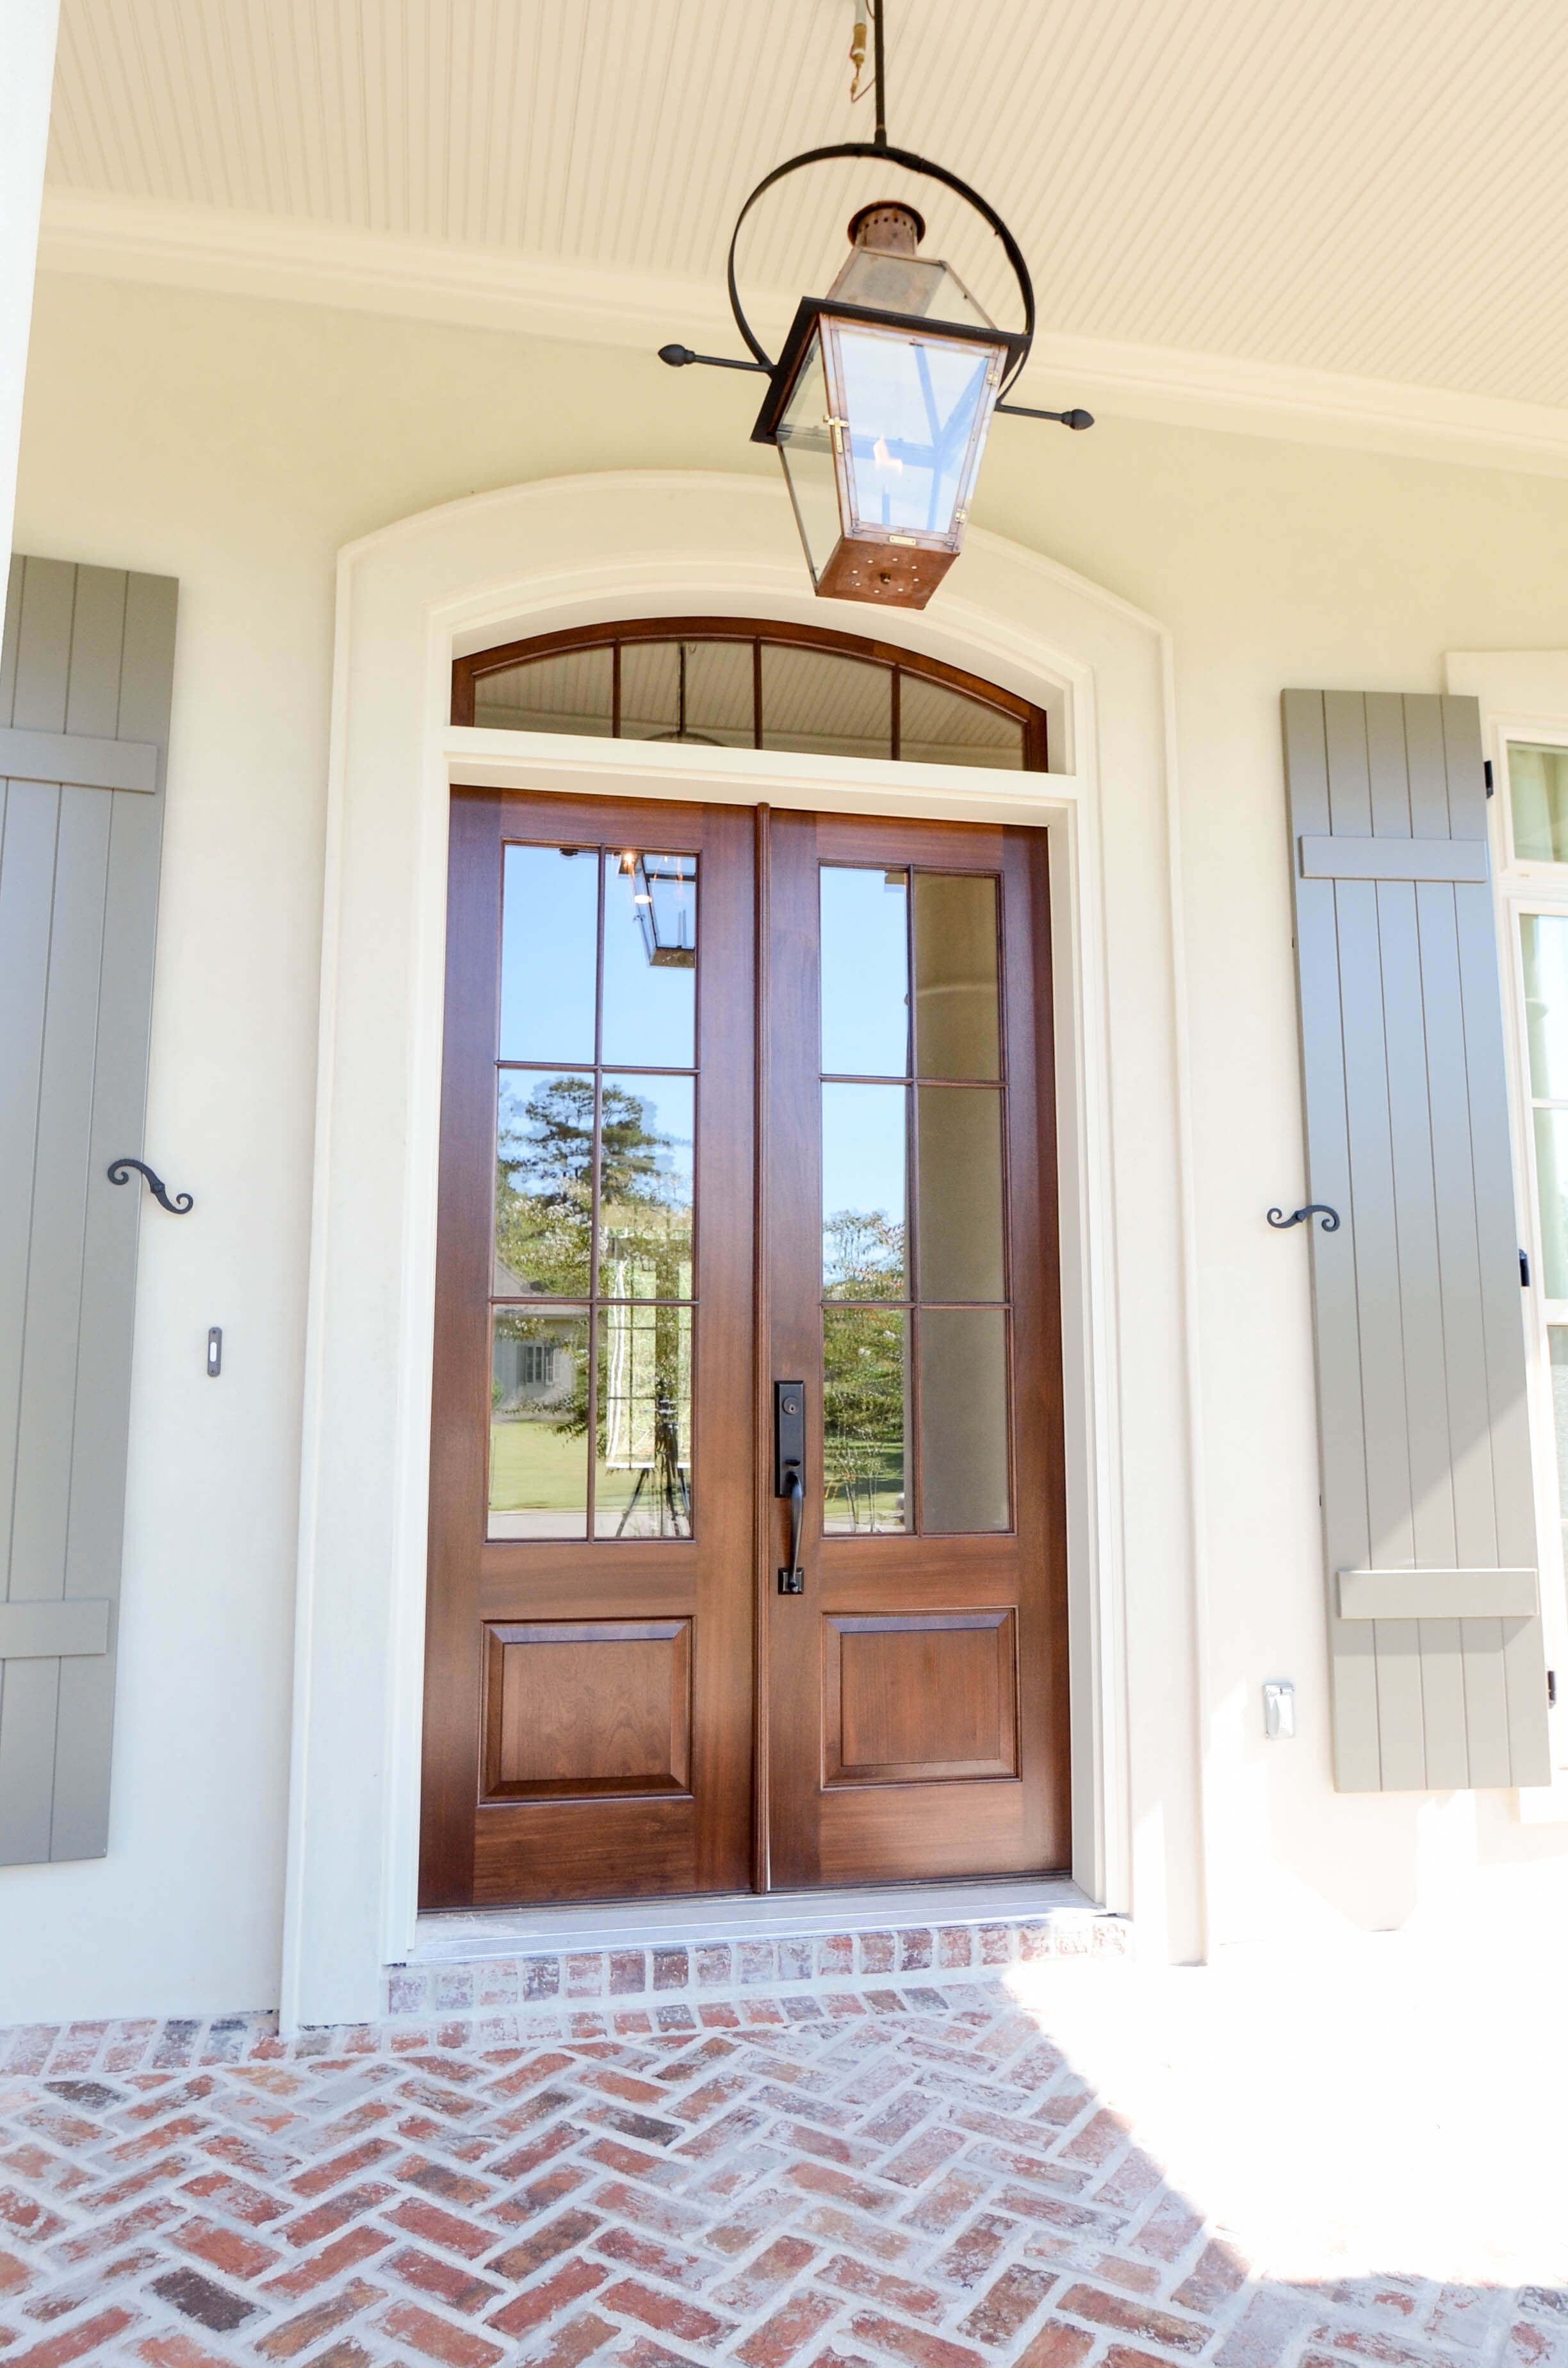 Herringbone brick exterior pinterest bricks porch and doors skinny double doors with loads of window entry with arched french style doors a lantern from bevolo in new orleans and herringbone brick rubansaba